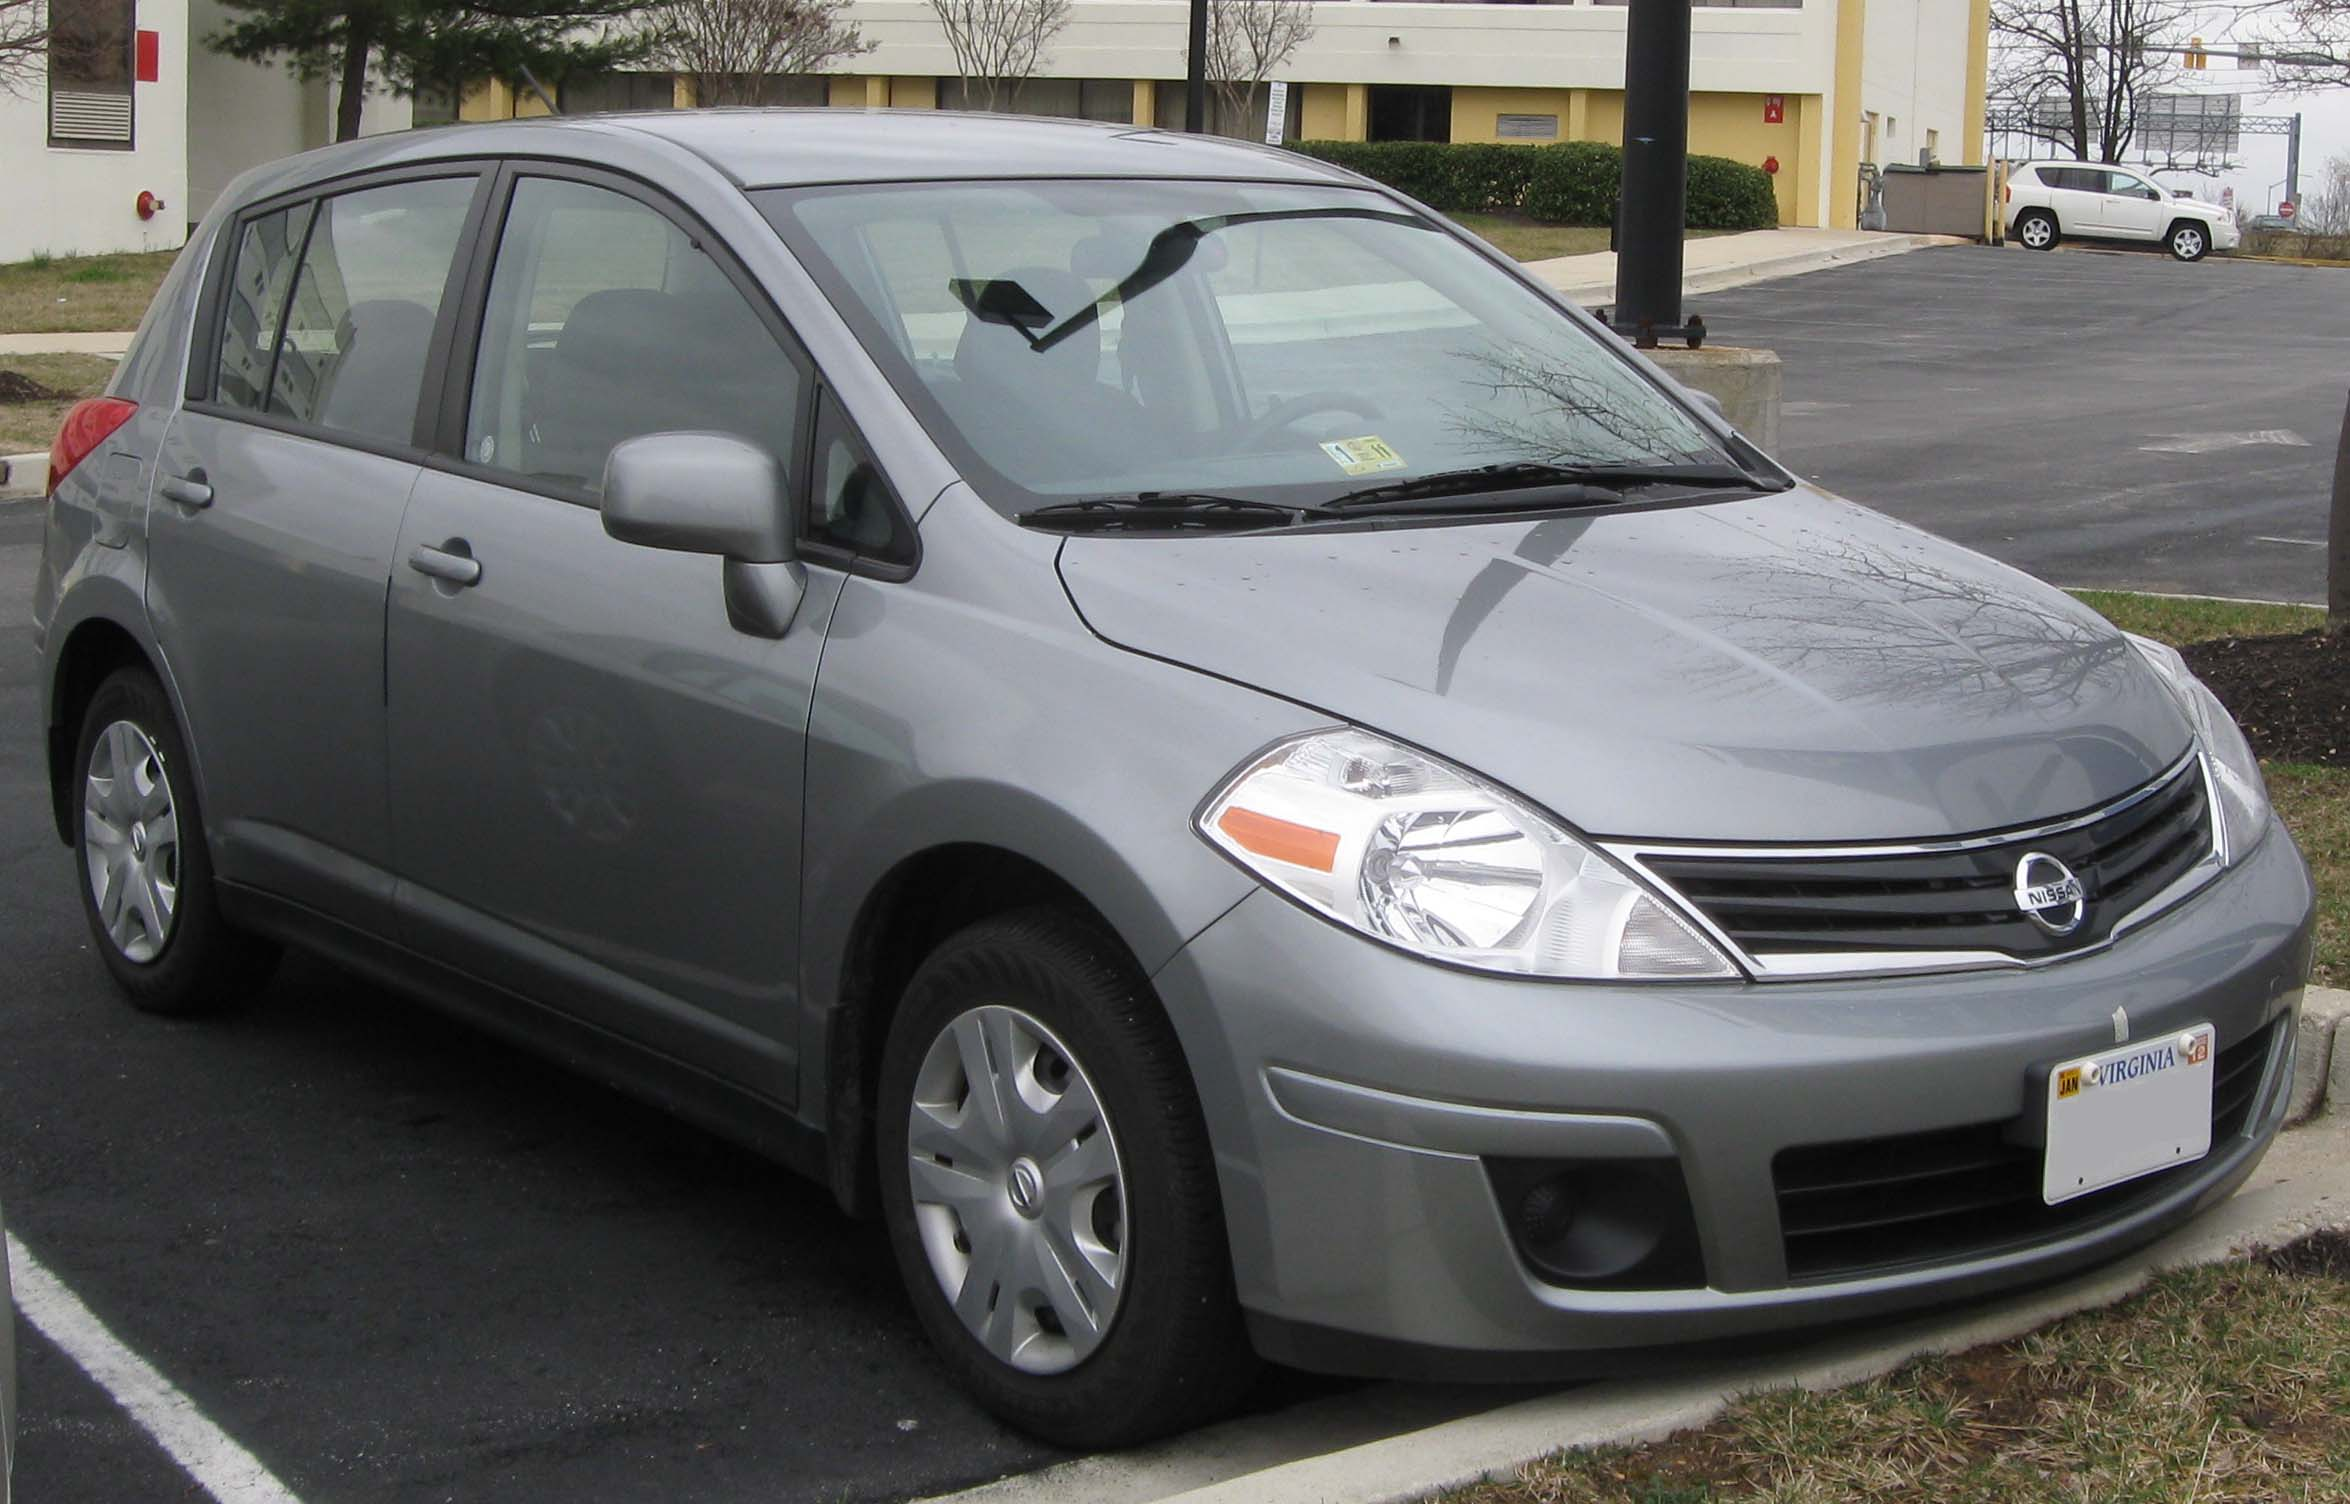 Nissan versa 2010 review amazing pictures and images look at the car